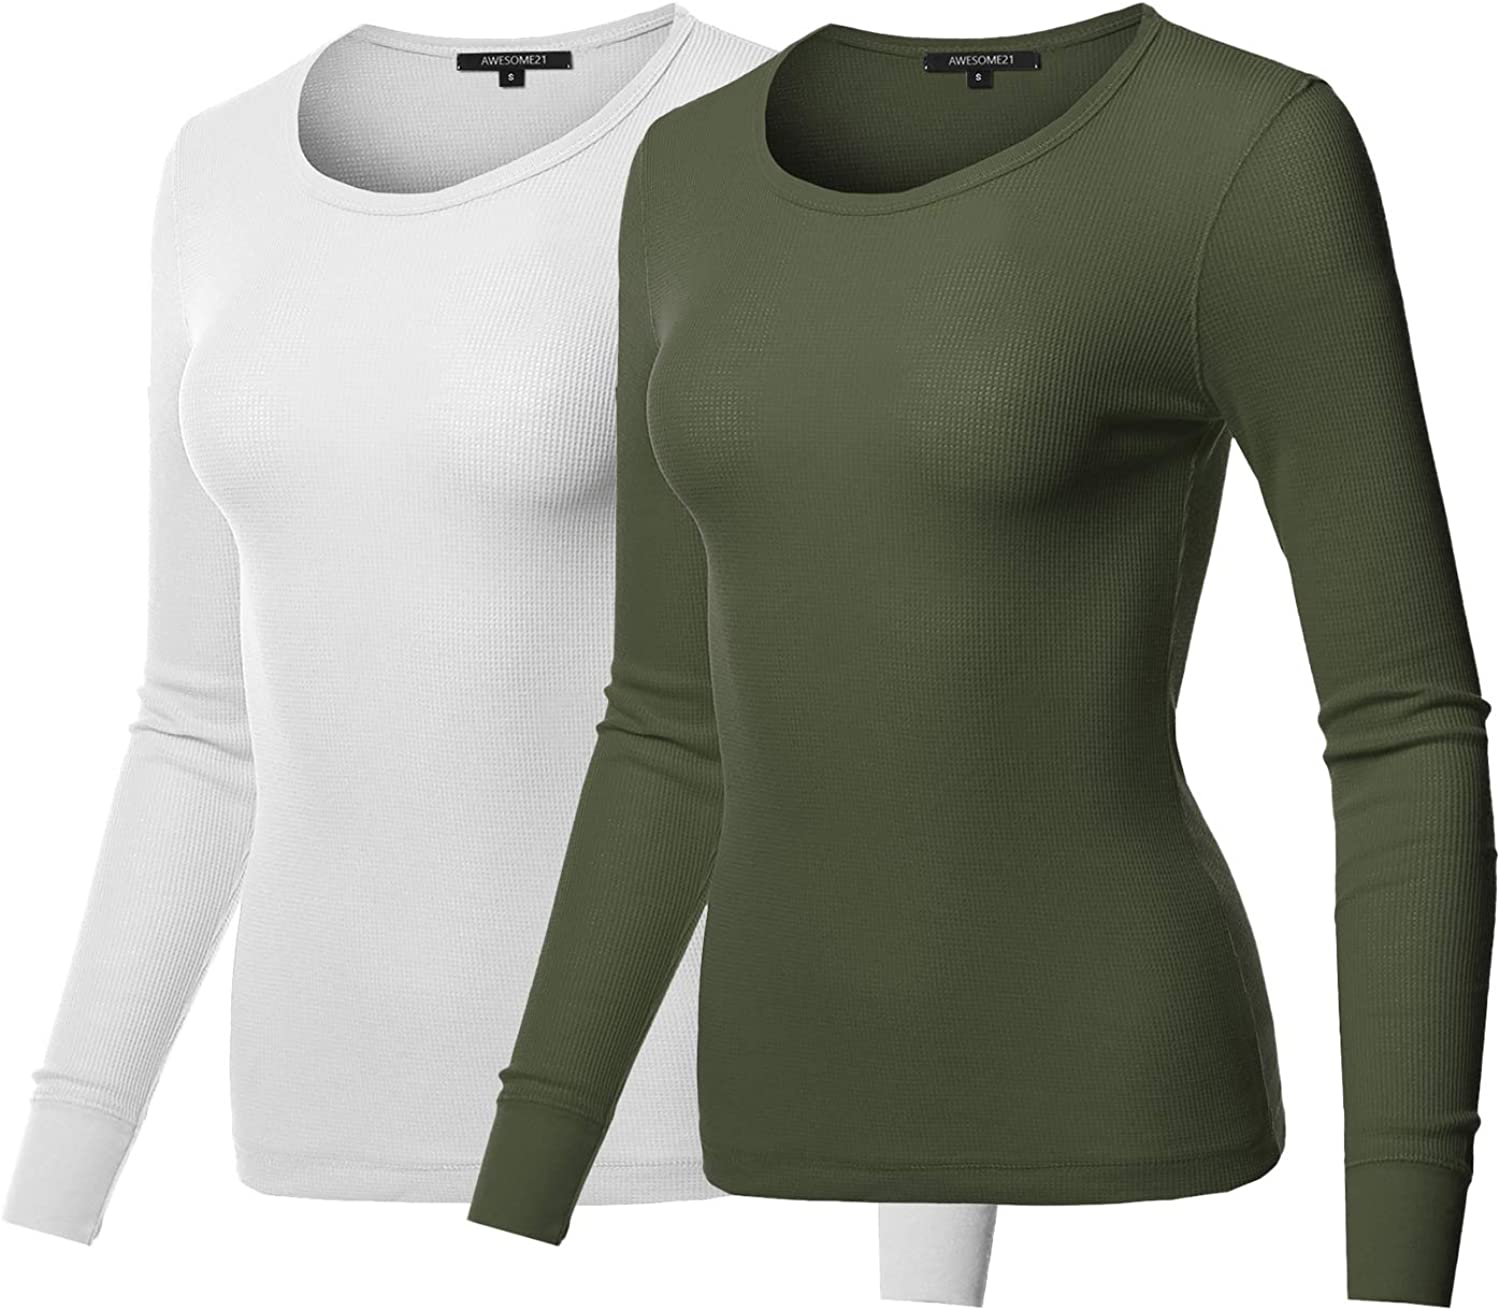 Awesome21 Women's Casual Solid Basic Crew Neck Long Sleeves Thermal Top